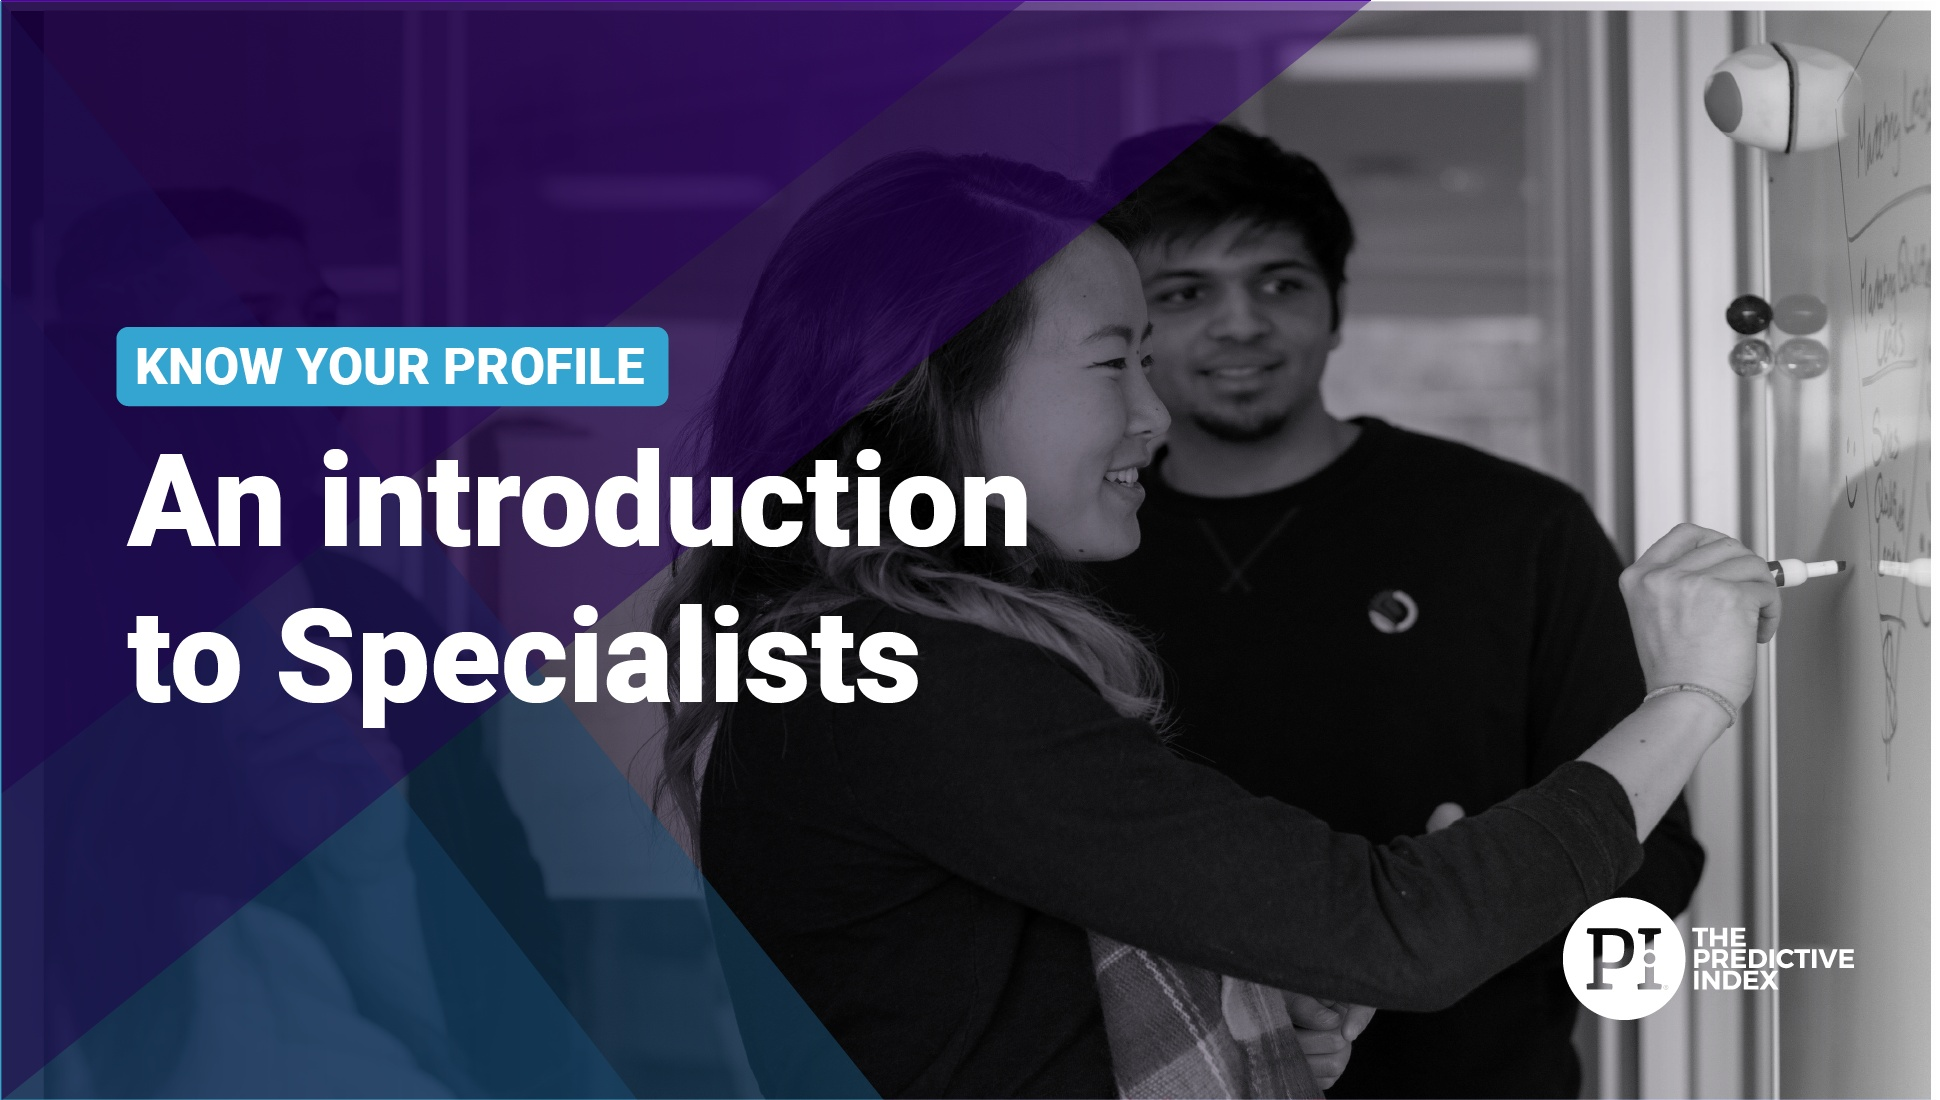 Introducing the Specialist